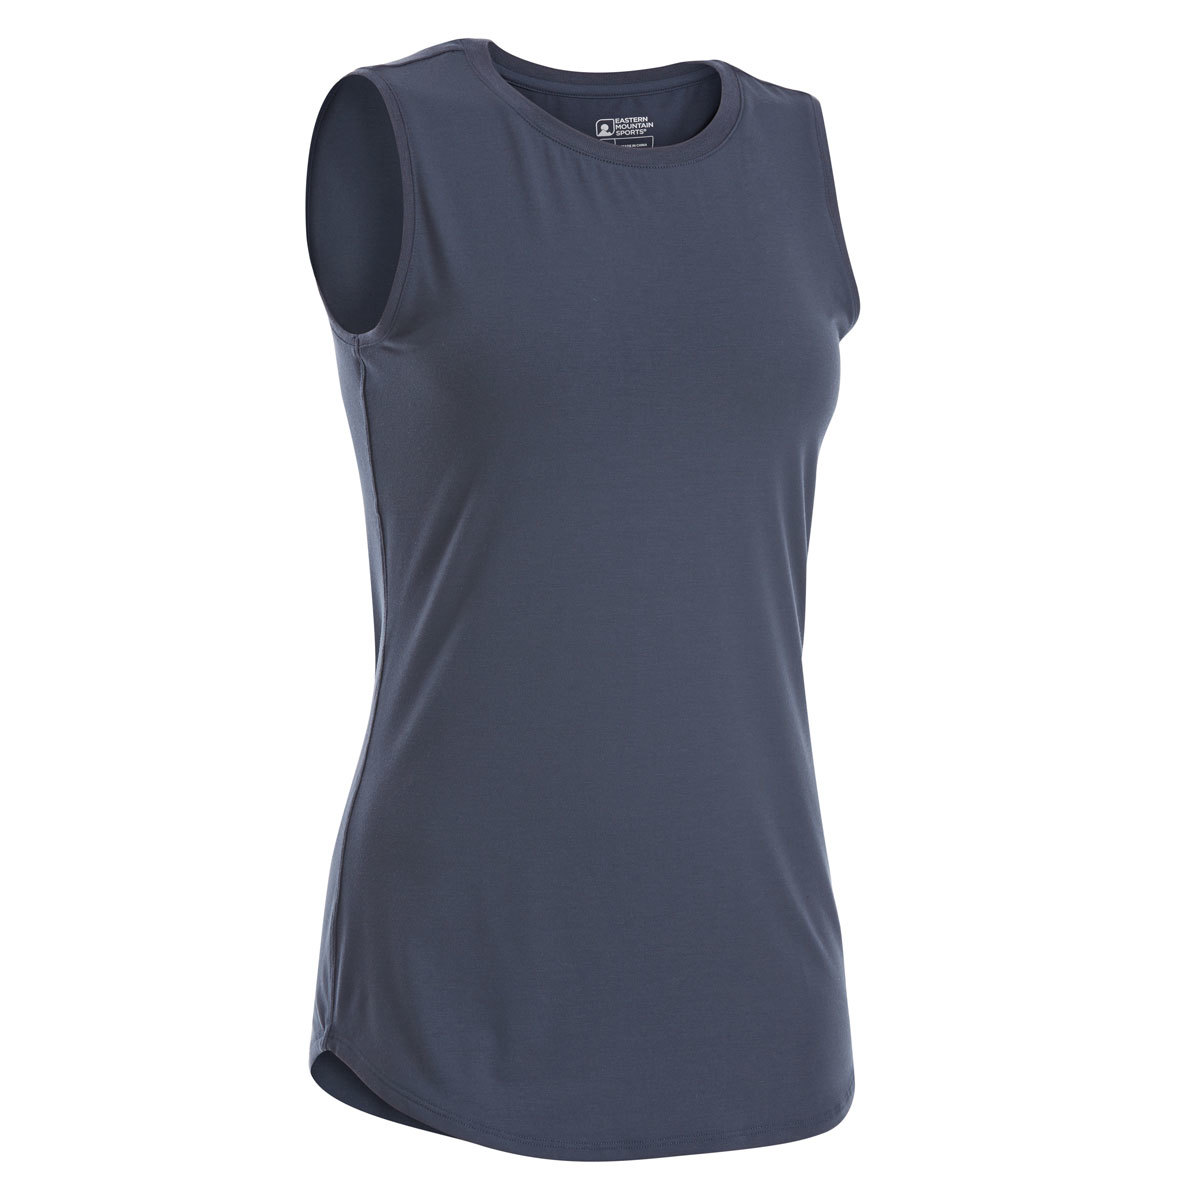 Ems Women's Highland Muscle Tank Top - Blue, M